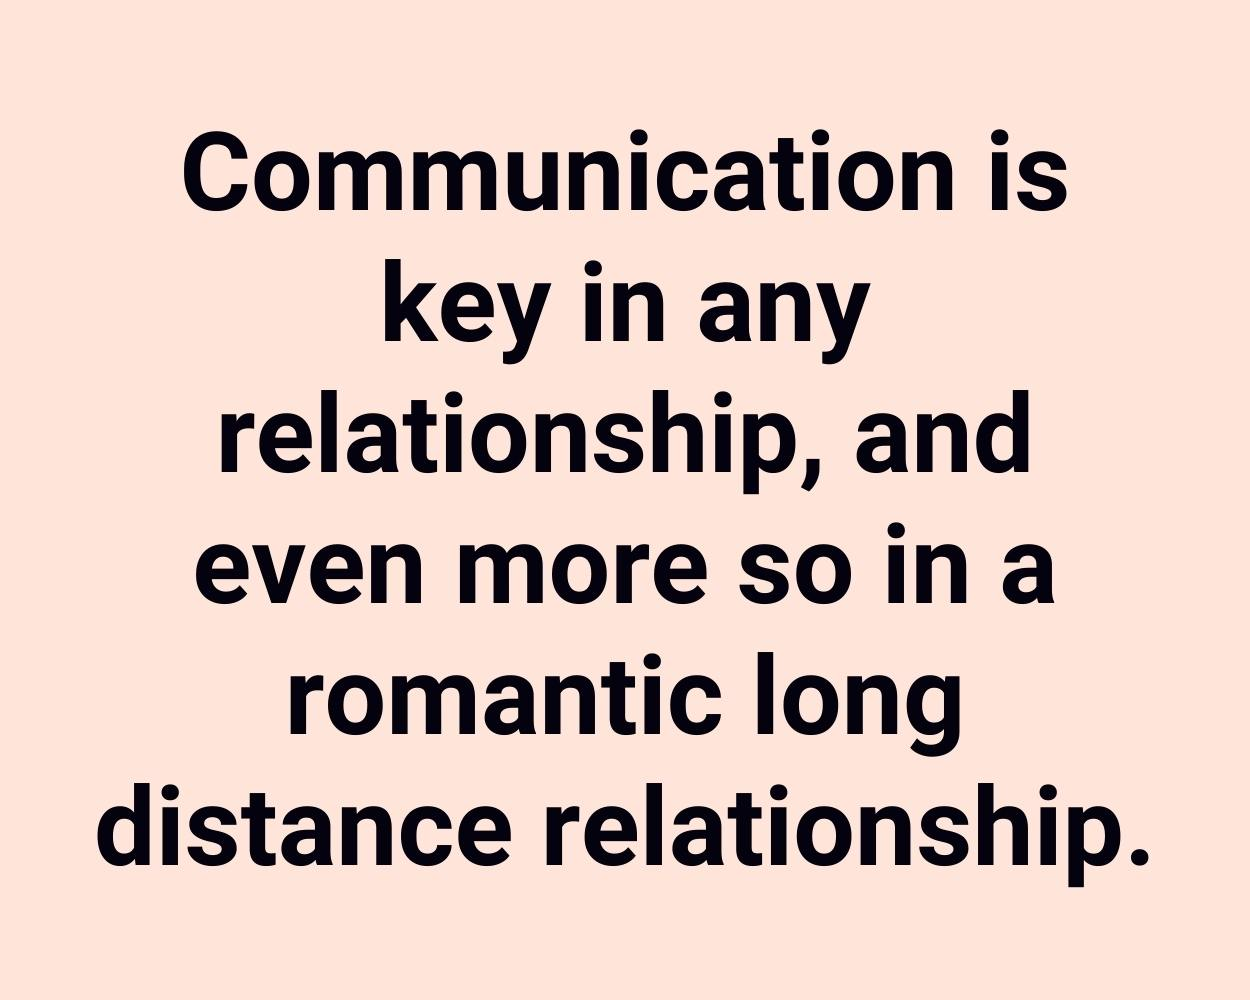 Communication is key in any relationship, and even more so in a romantic long distance relationship.